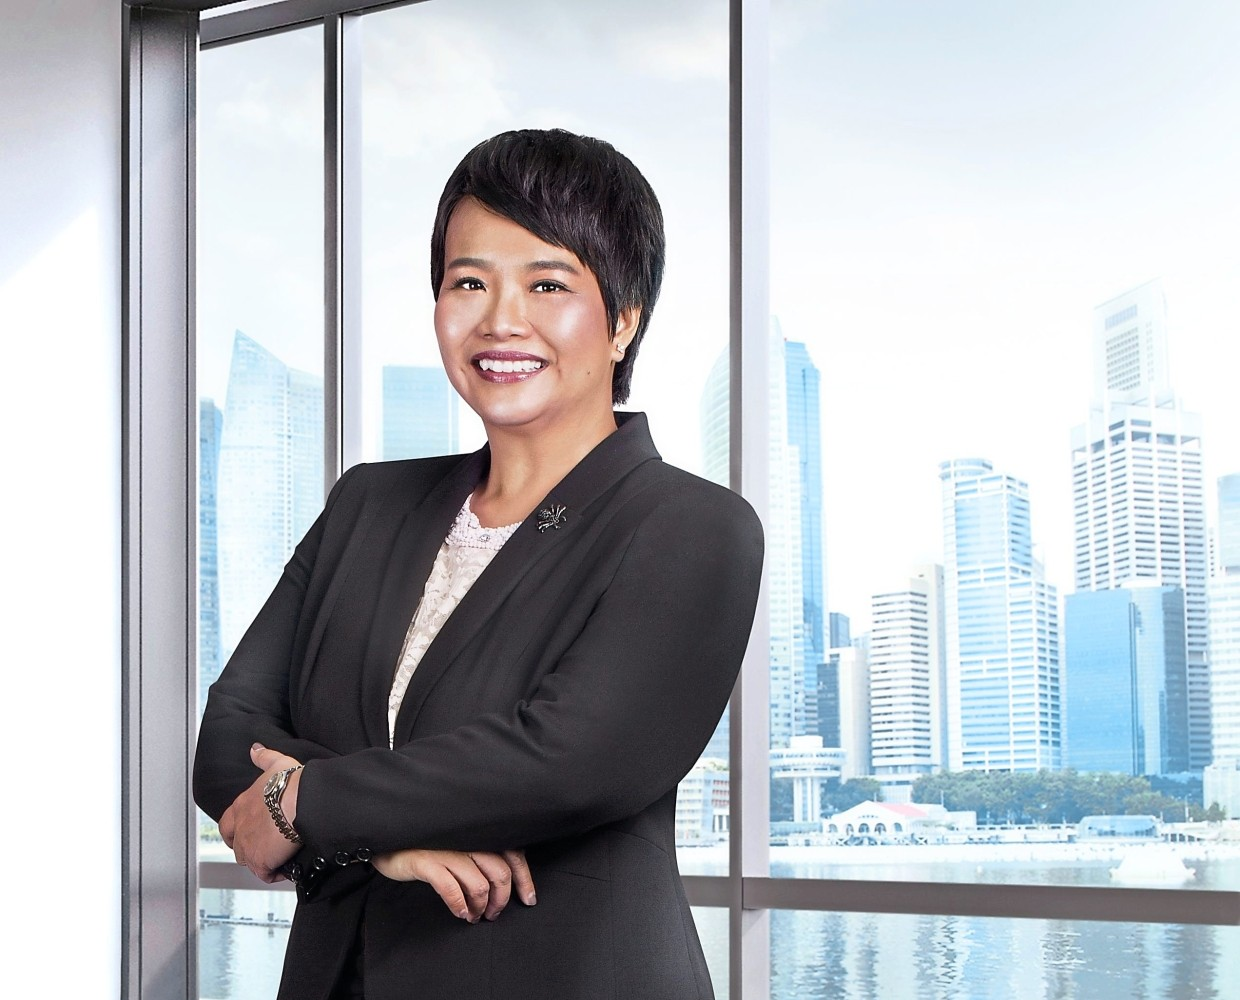 Meanwhile, in line with the potential relocation of production facilities outside of China due to trade tensions, OCBC Ltd chief economist Selena Ling expected some tax incentives in Budget 2020 to increase Malaysia's attractiveness as a foreign direct investment (FDI) destination.